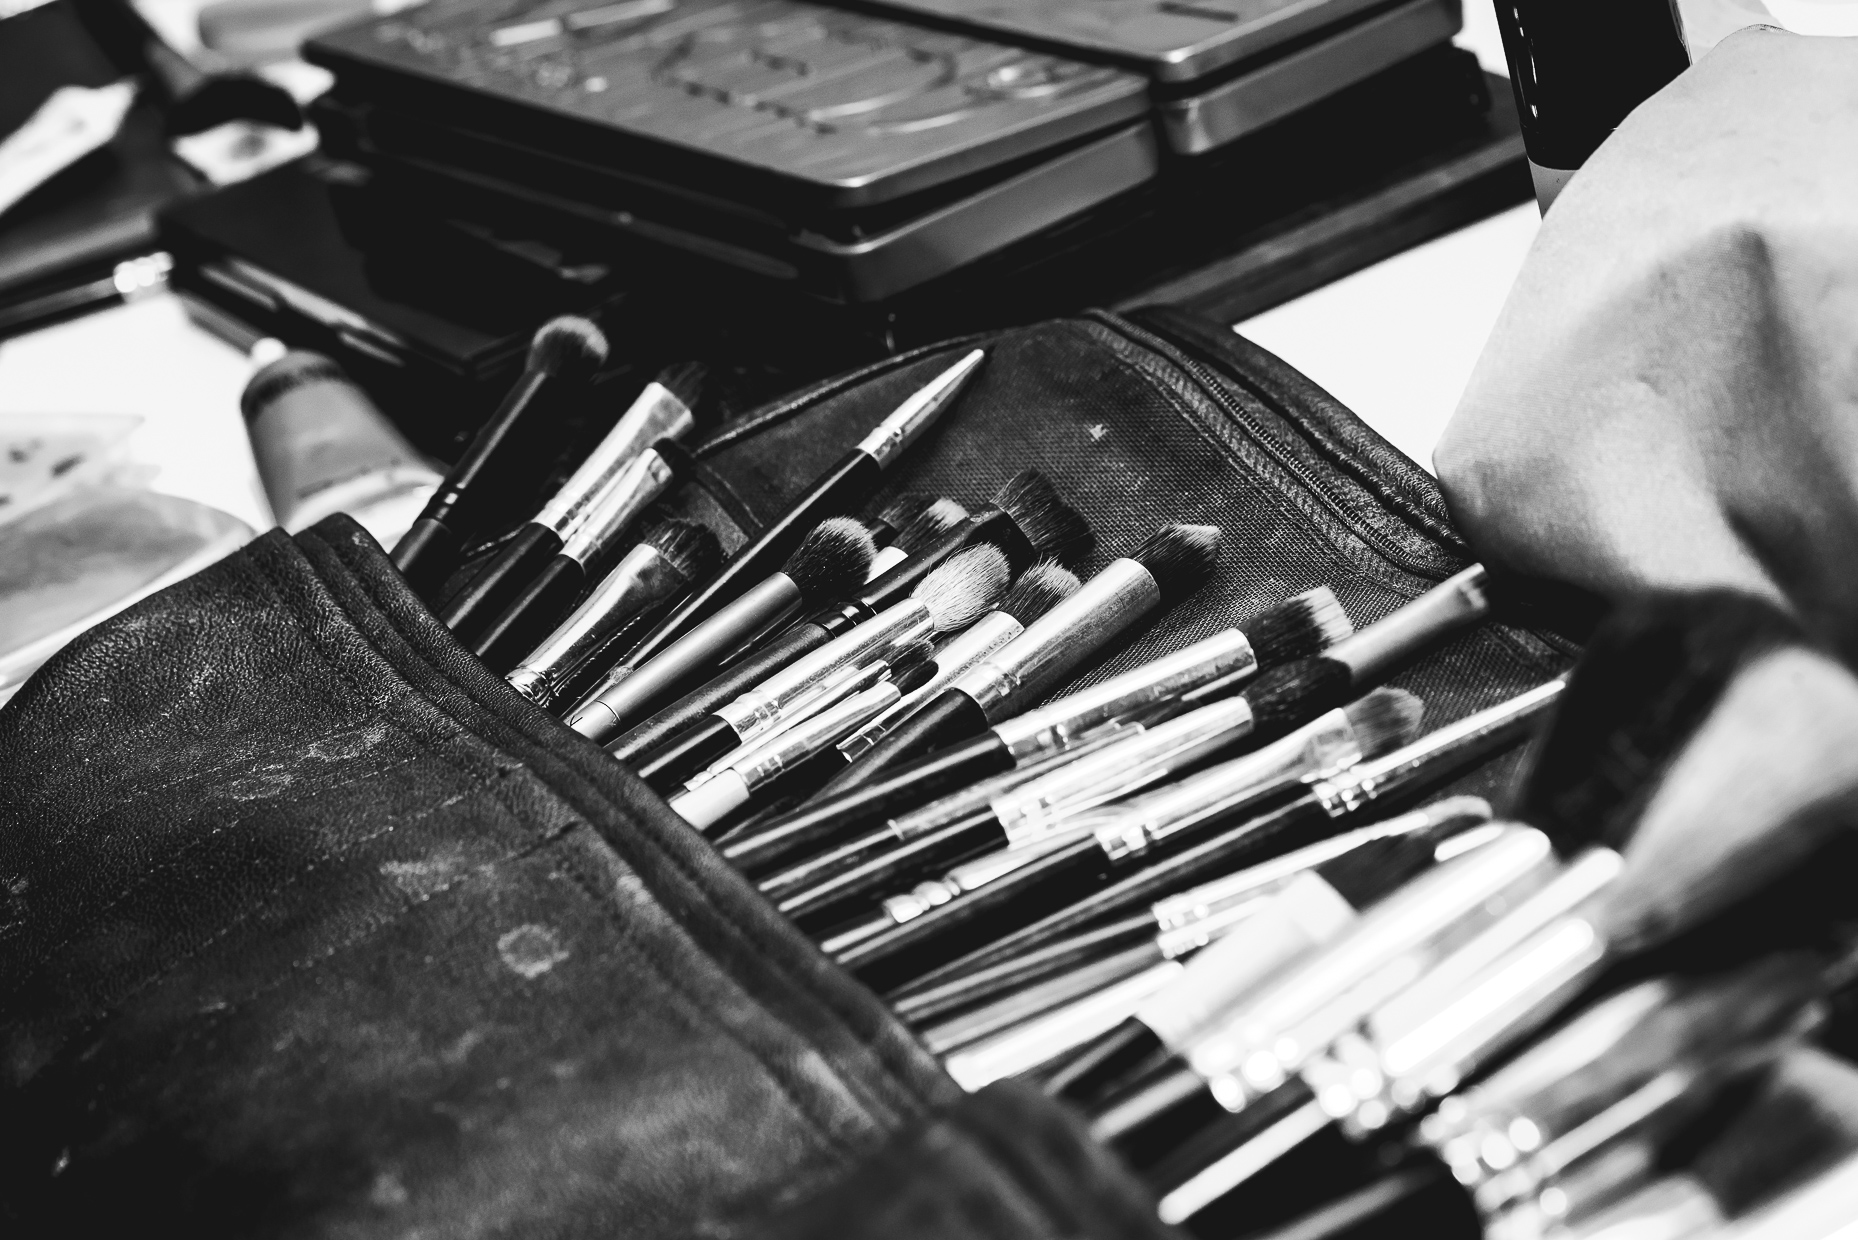 austin-wedding-photographer-makeup-brushes-cosmetics